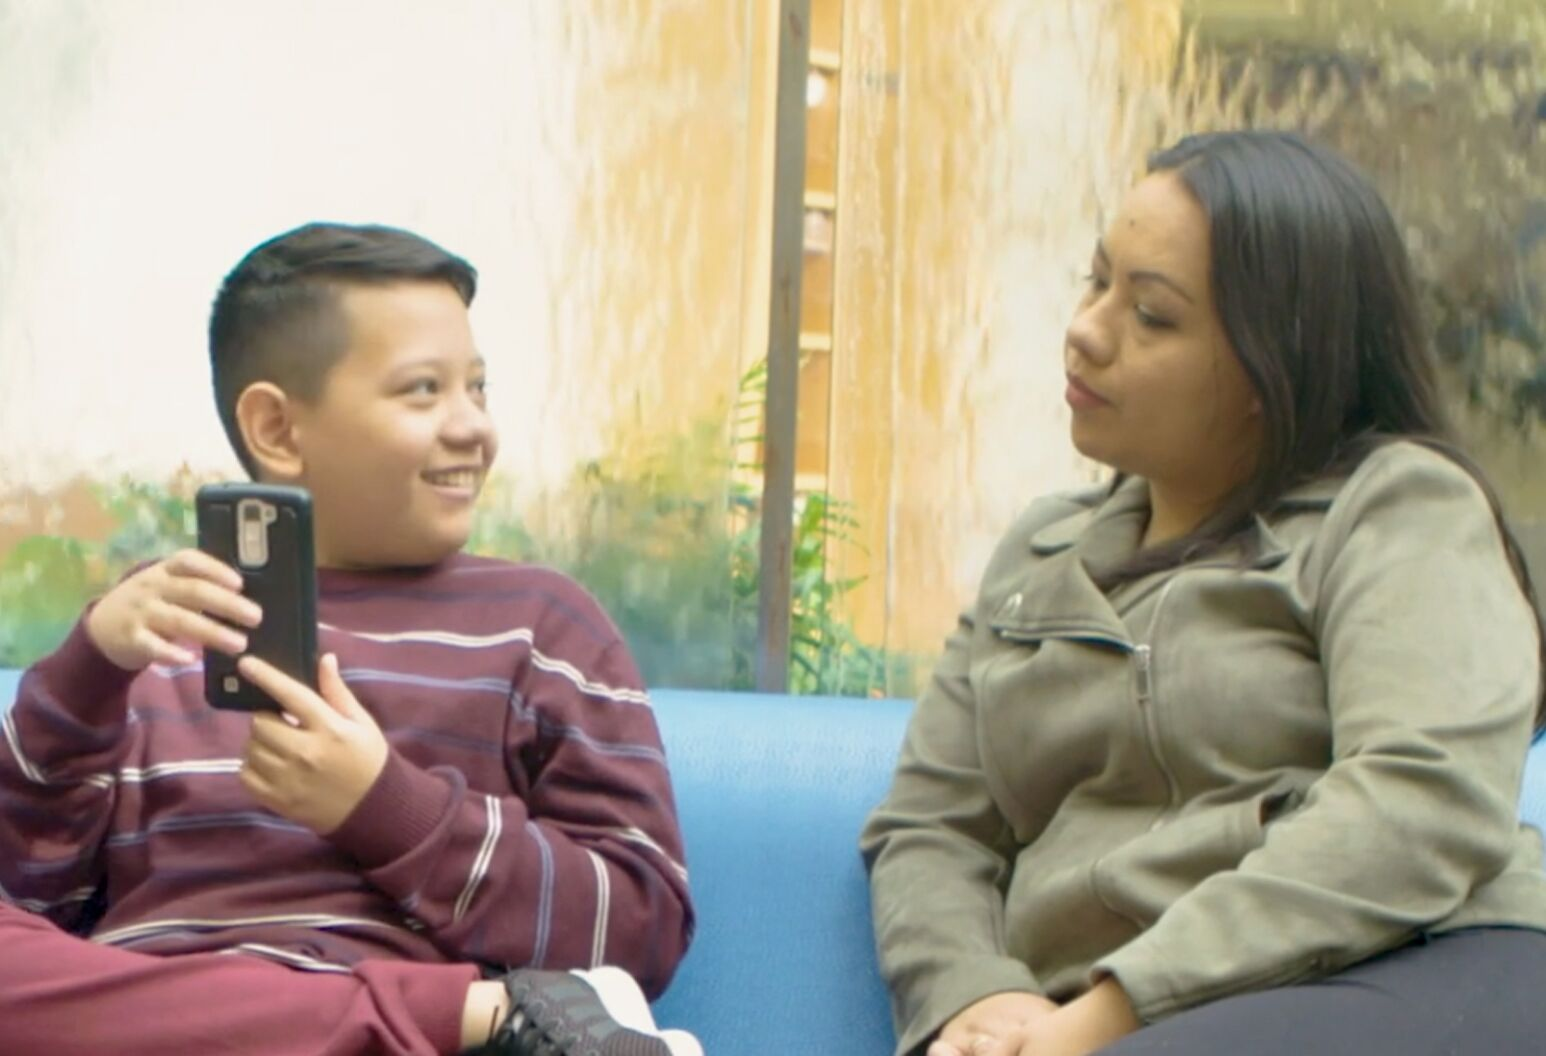 A boy and his mother sit on a couch at Cohen Children's Medical Center and look at each other. The boy is holding a cell phone in his hand.